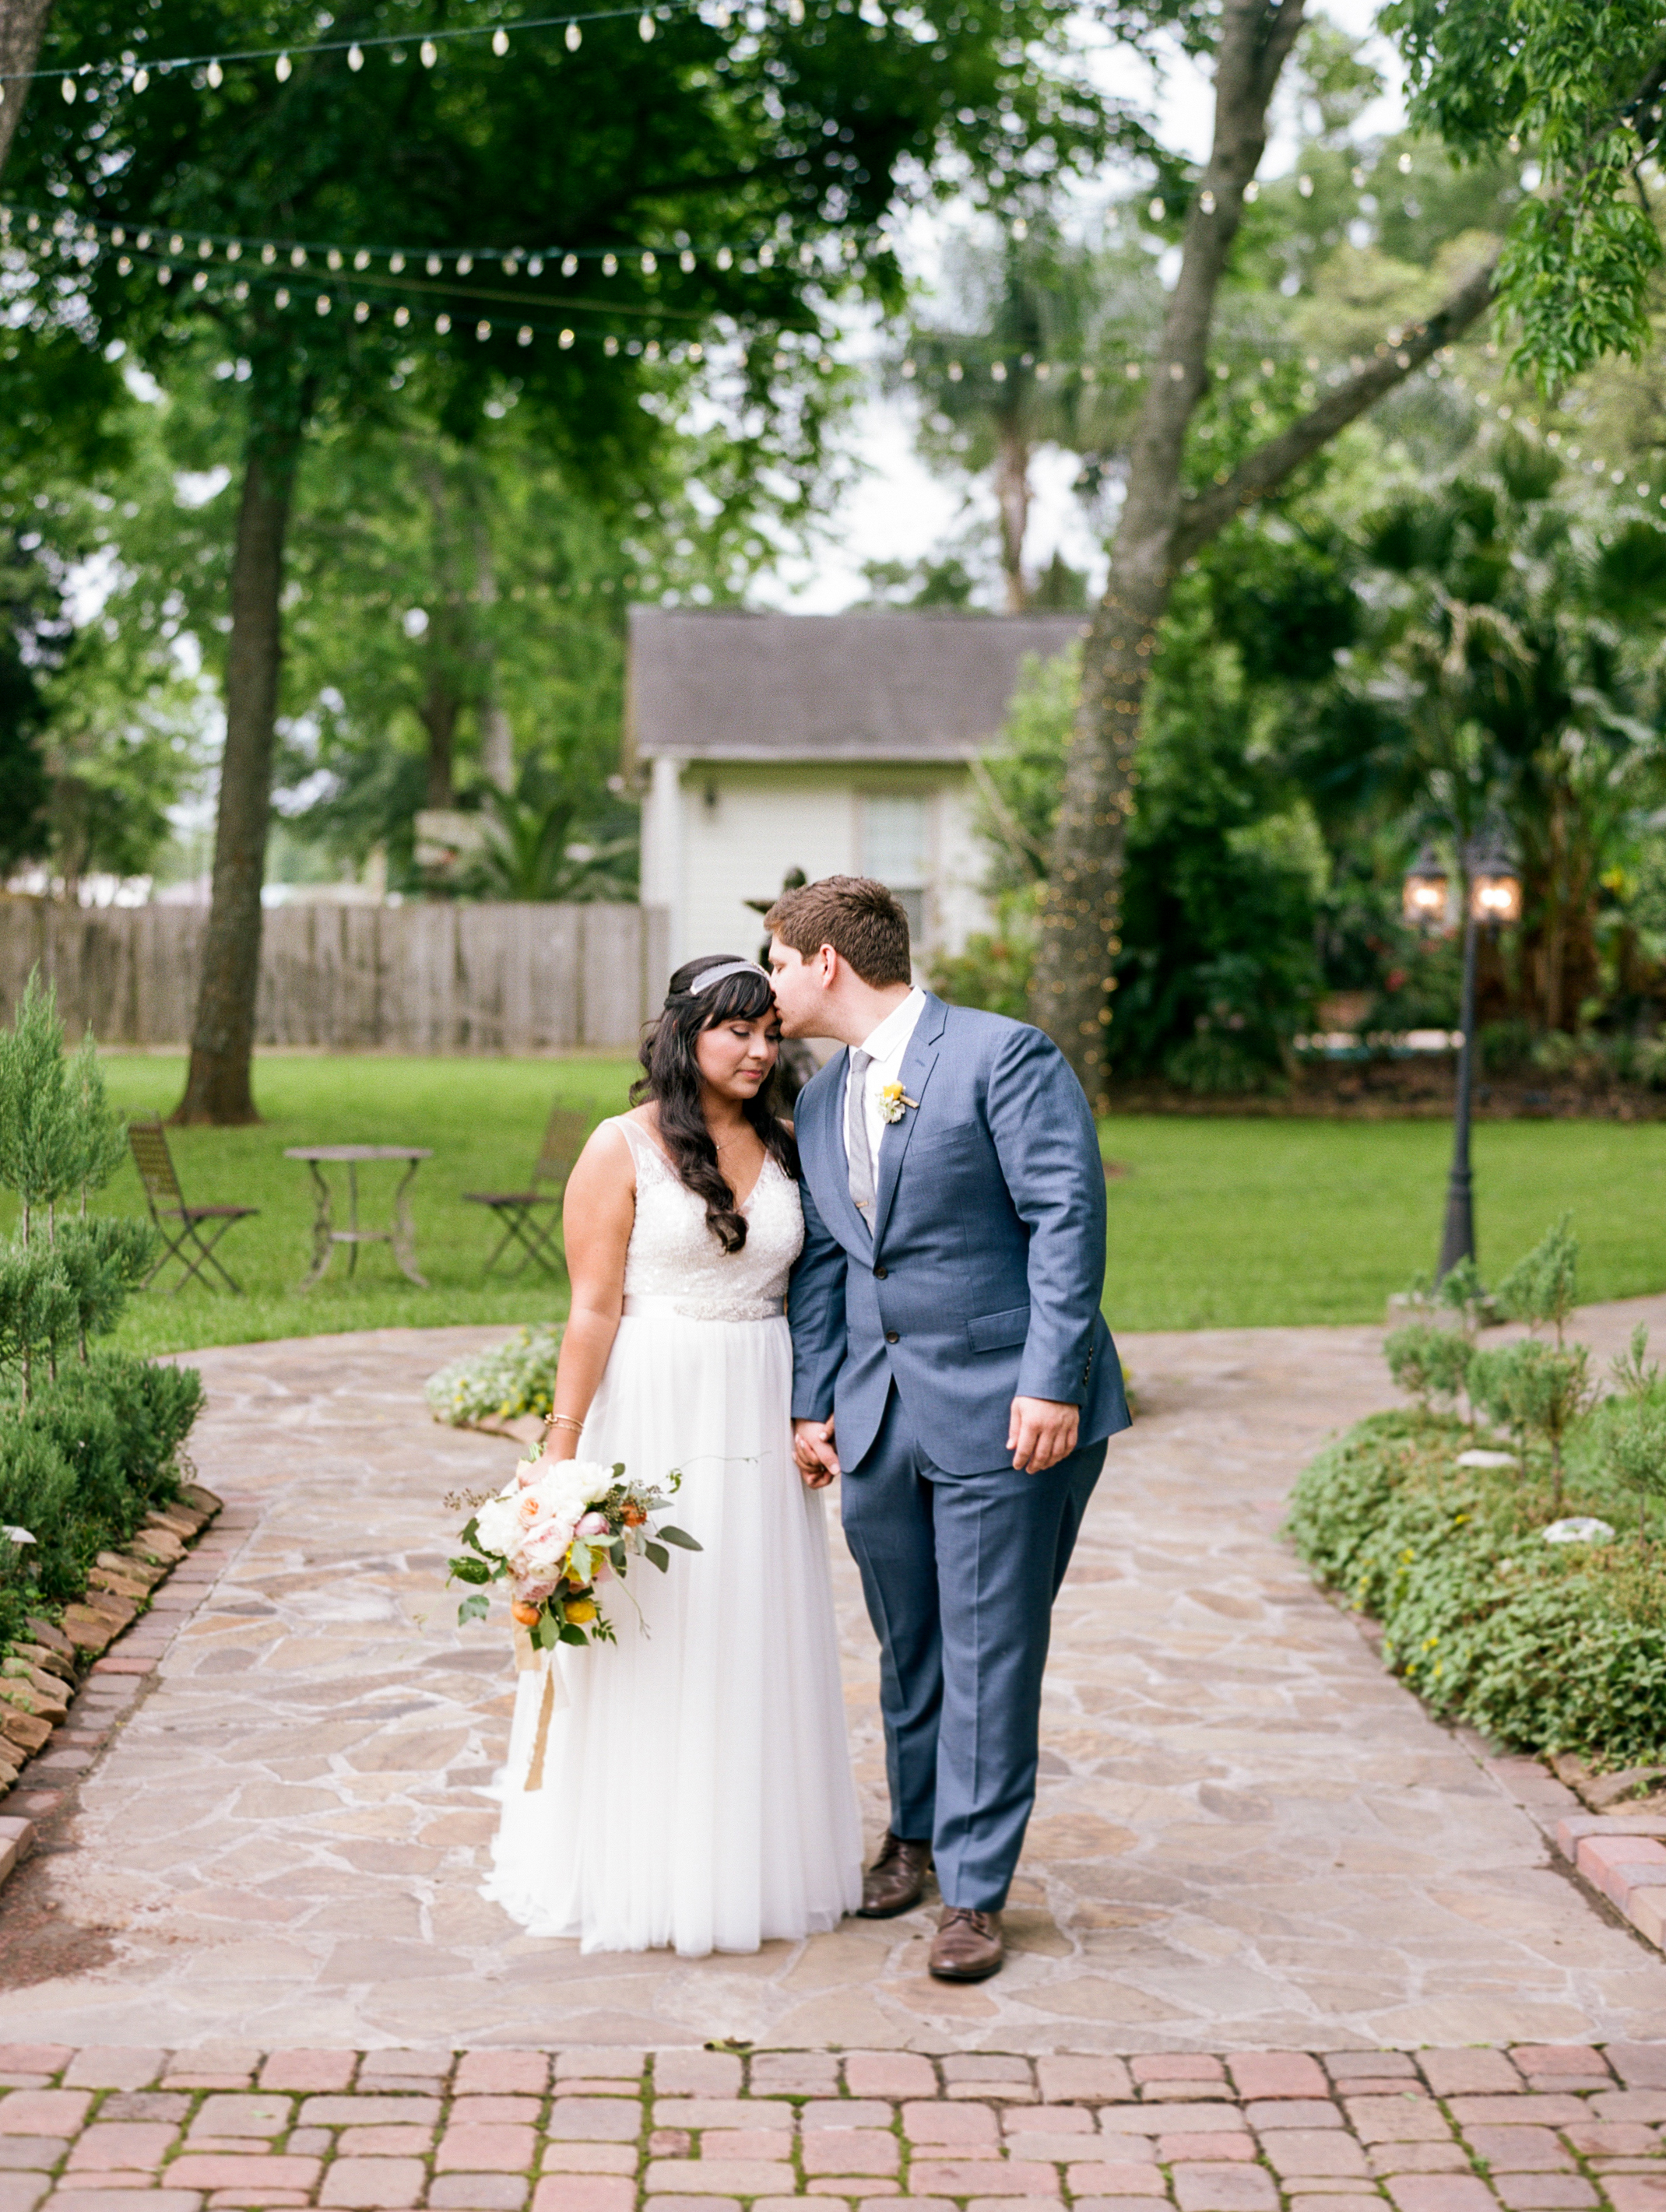 041715_Karina and Jonathan_First Look-56.jpg